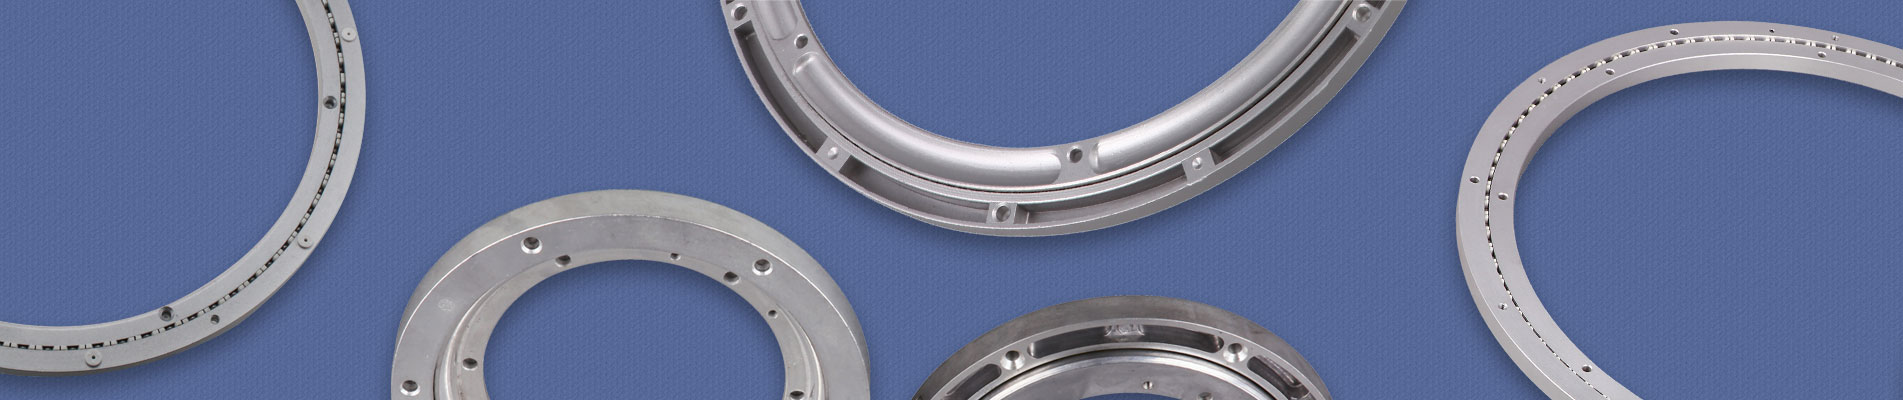 aluminum lazy susan bearings